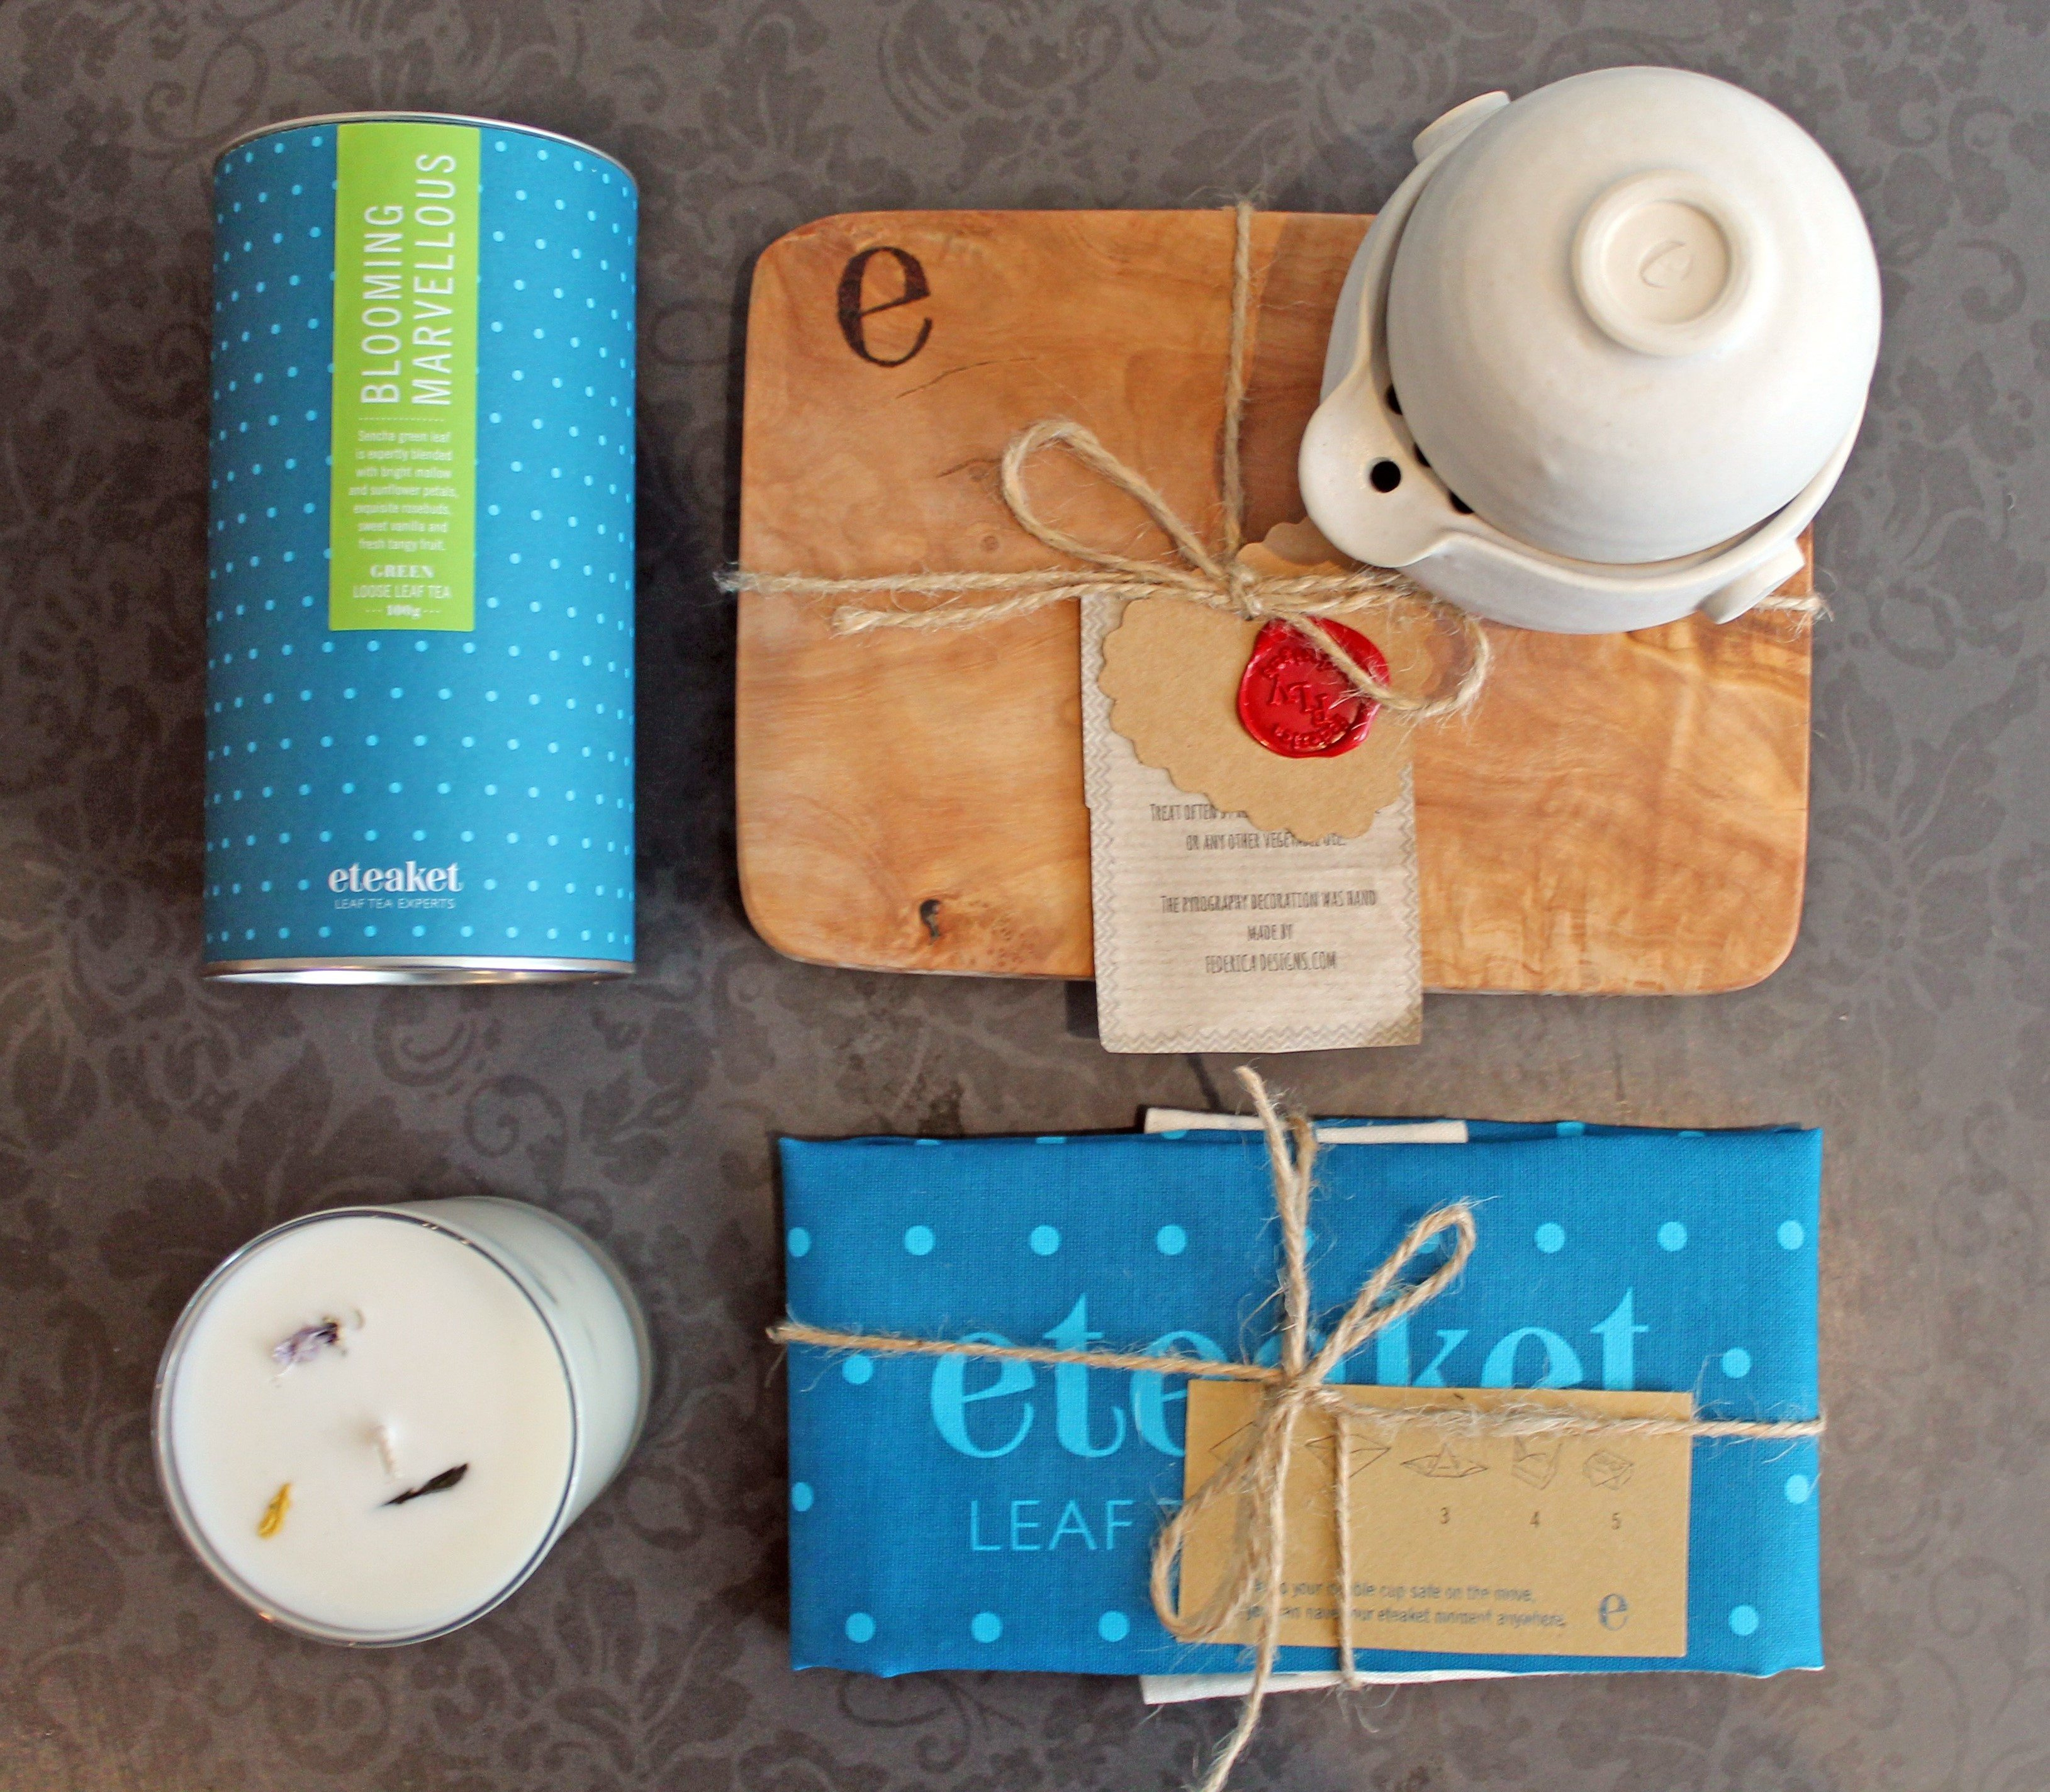 ETEAKET MOMENT GIFT SET